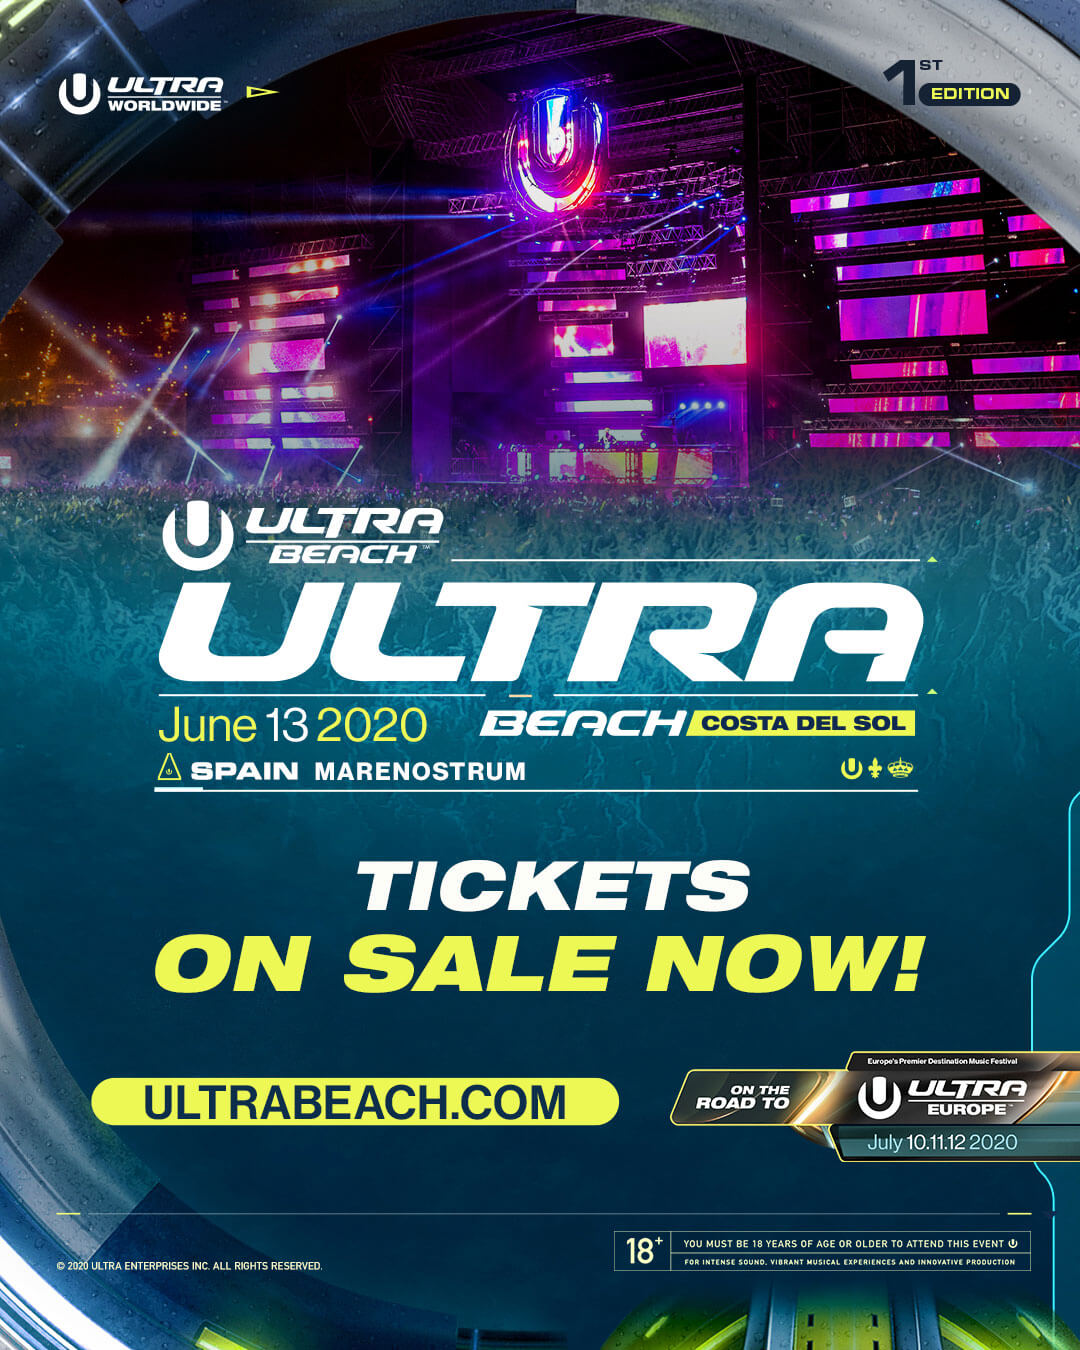 ULTRA BEACH Costa del Sol Tickets On Sale